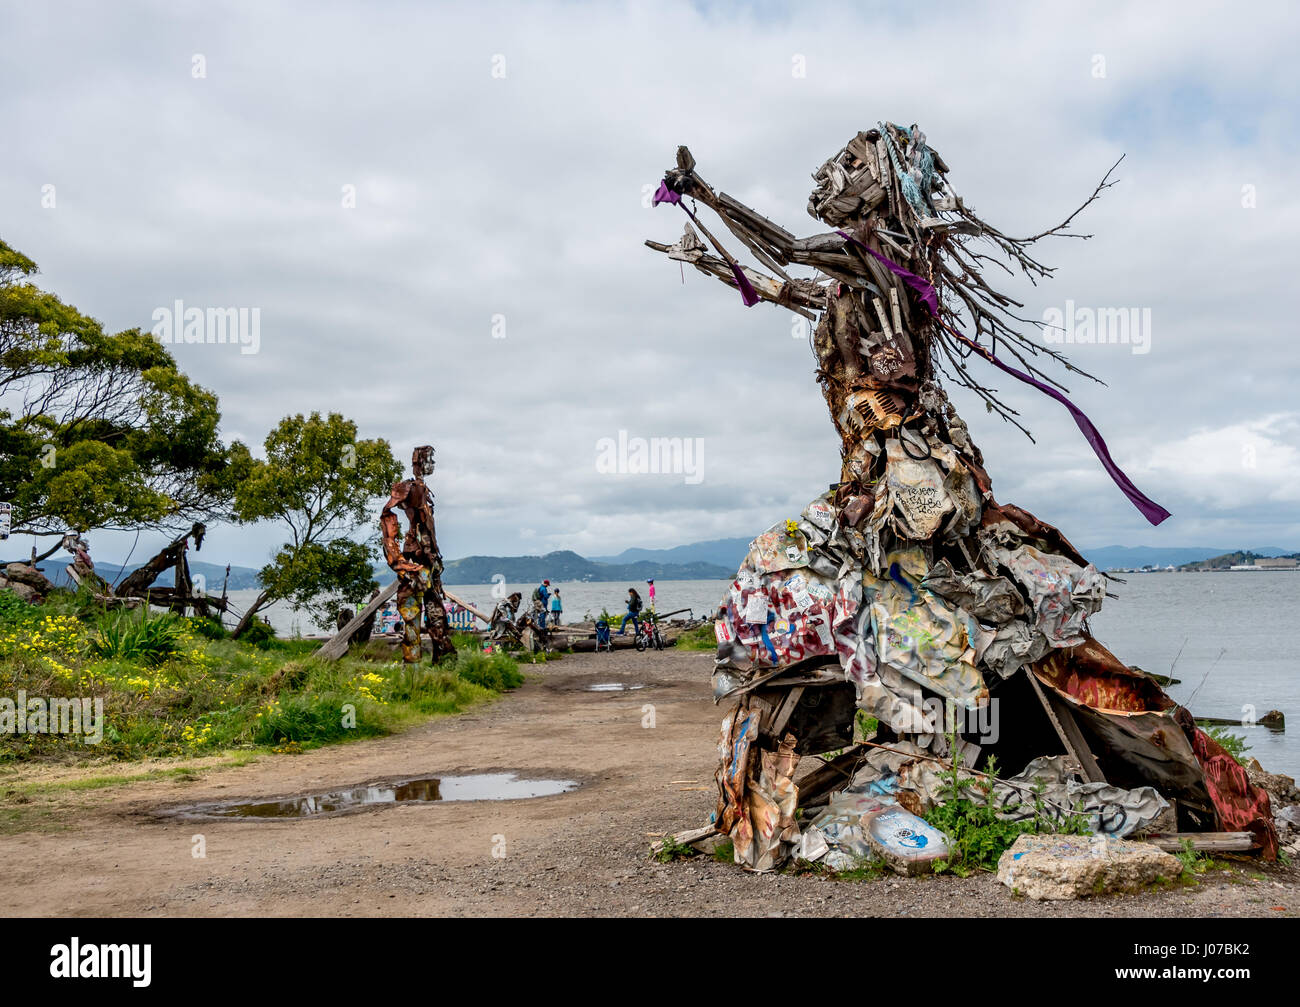 Large, dramatic outdoor sculpture of woman made from driftwood and upcycled garbage beside San Francisco Bay - Stock Image